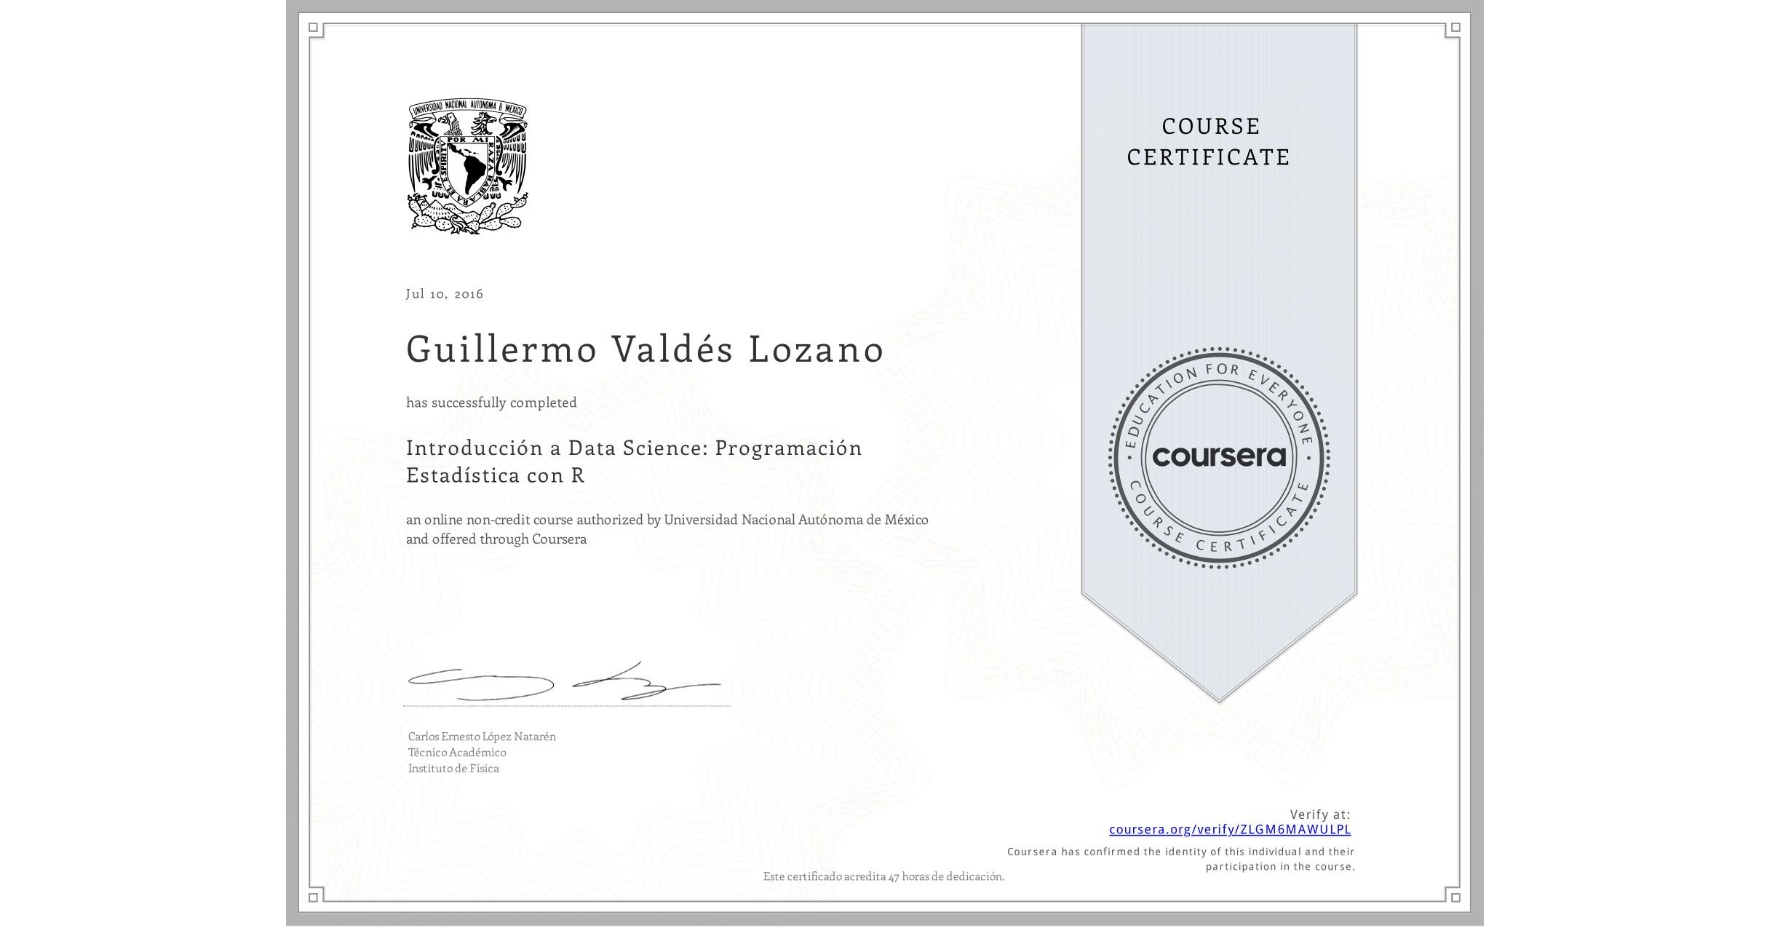 View certificate for Guillermo Valdés Lozano, Introducción a Data Science: Programación Estadística con R, an online non-credit course authorized by Universidad Nacional Autónoma de México and offered through Coursera